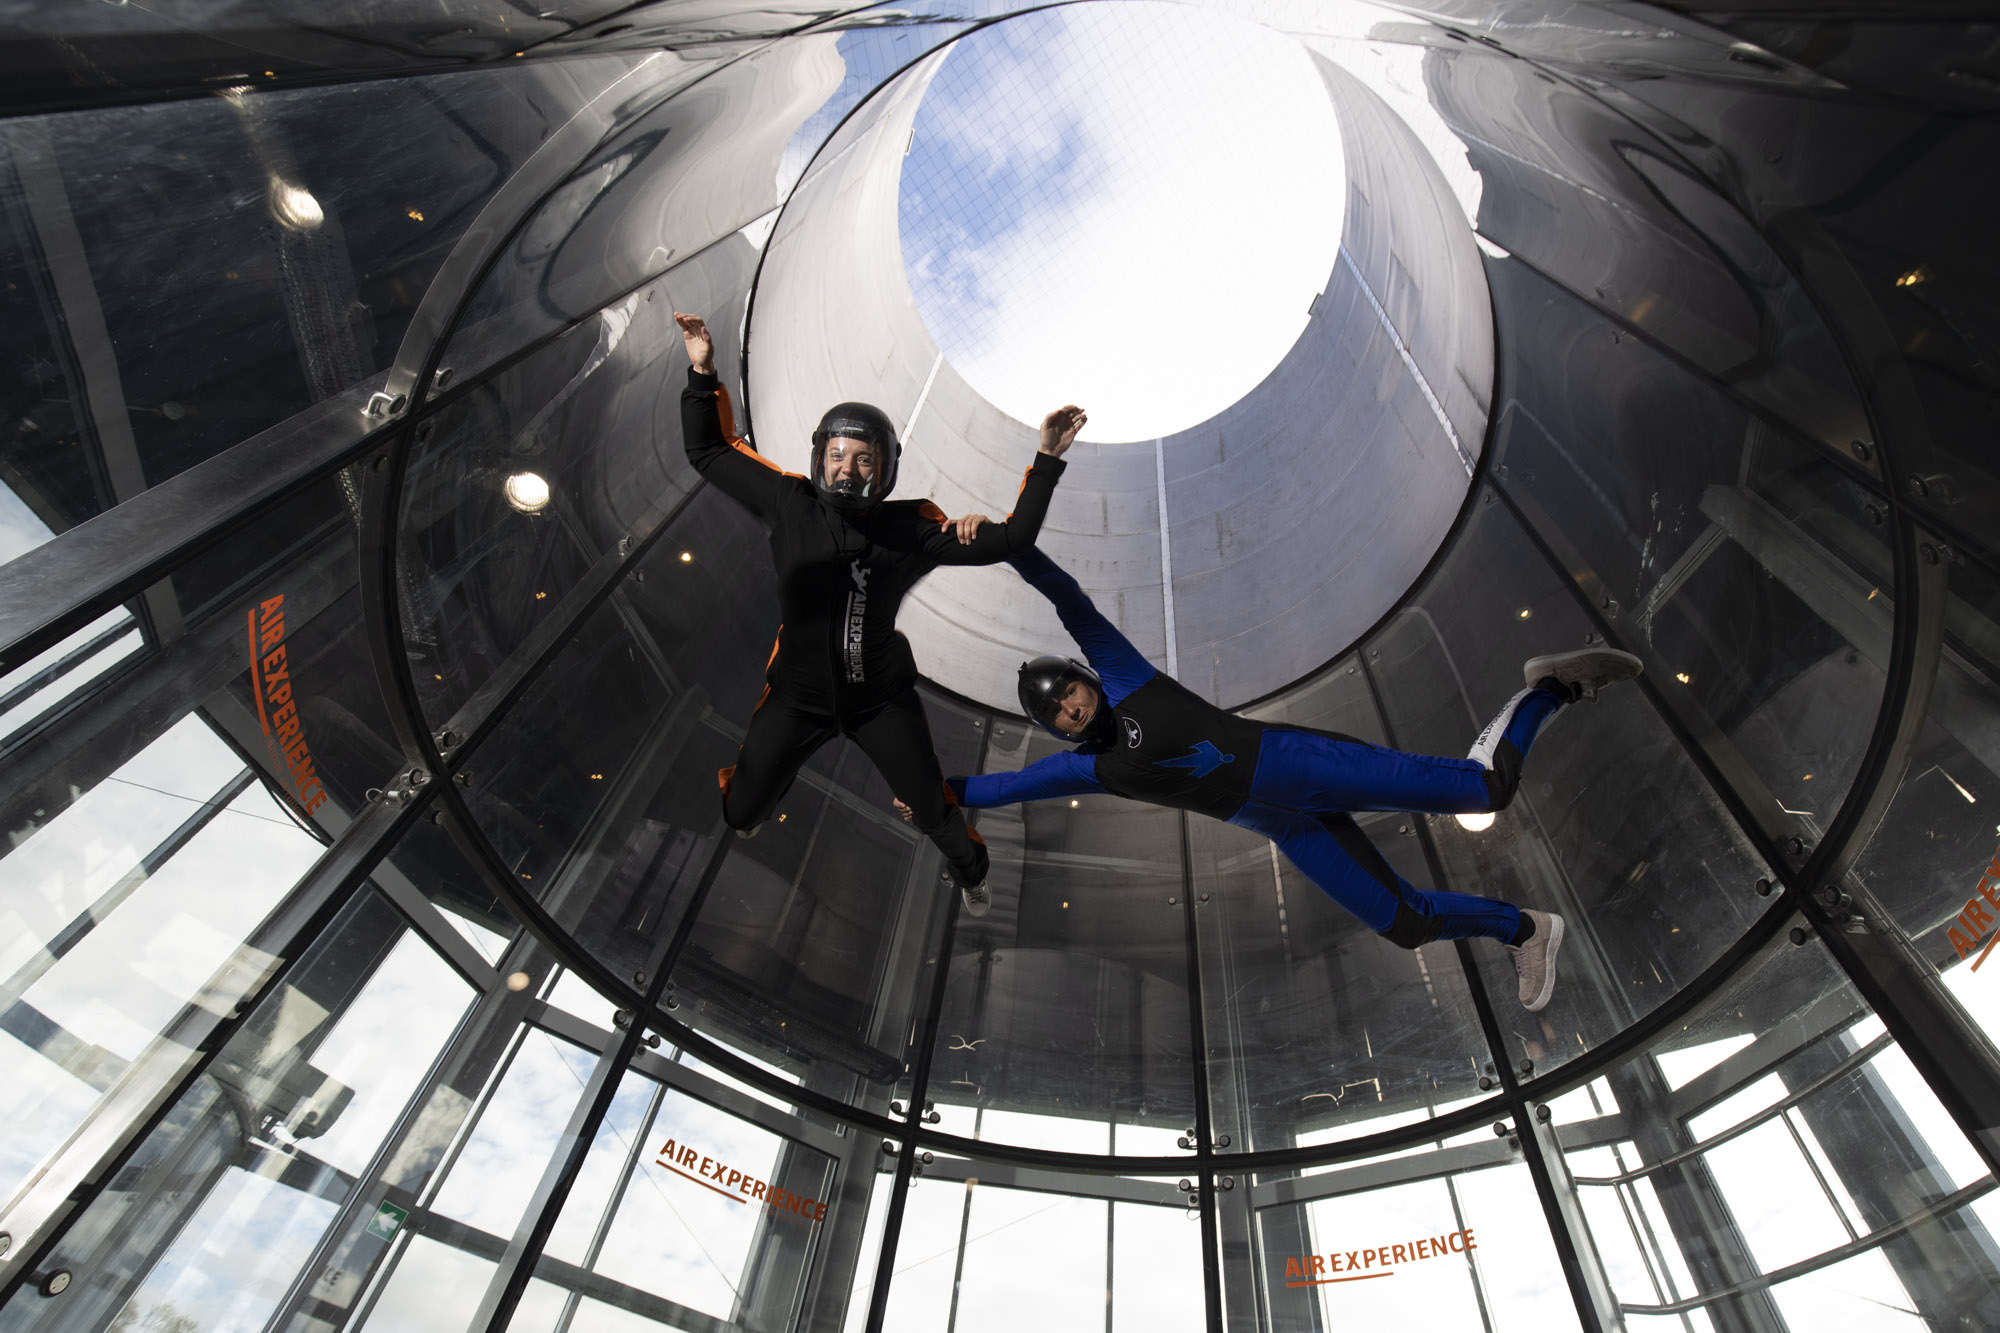 On Indoor Skydiving drømmen om at flyve